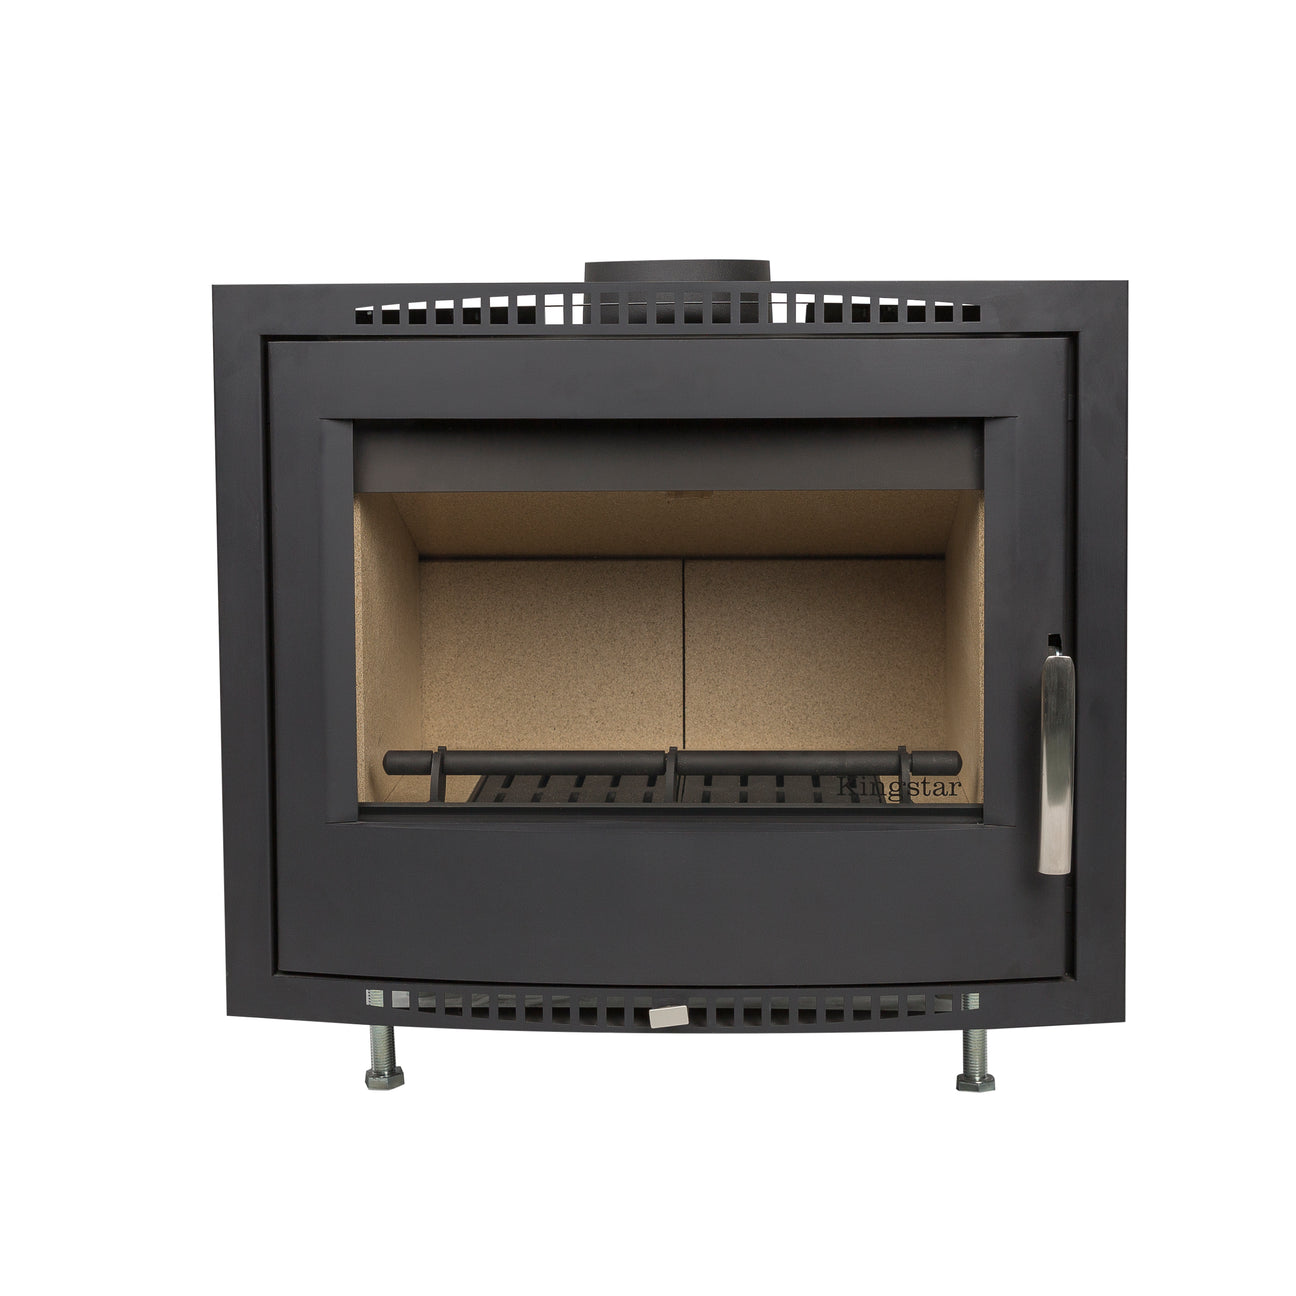 Shannon Passive Eco Stove shown with external air, air ducting and modern design.